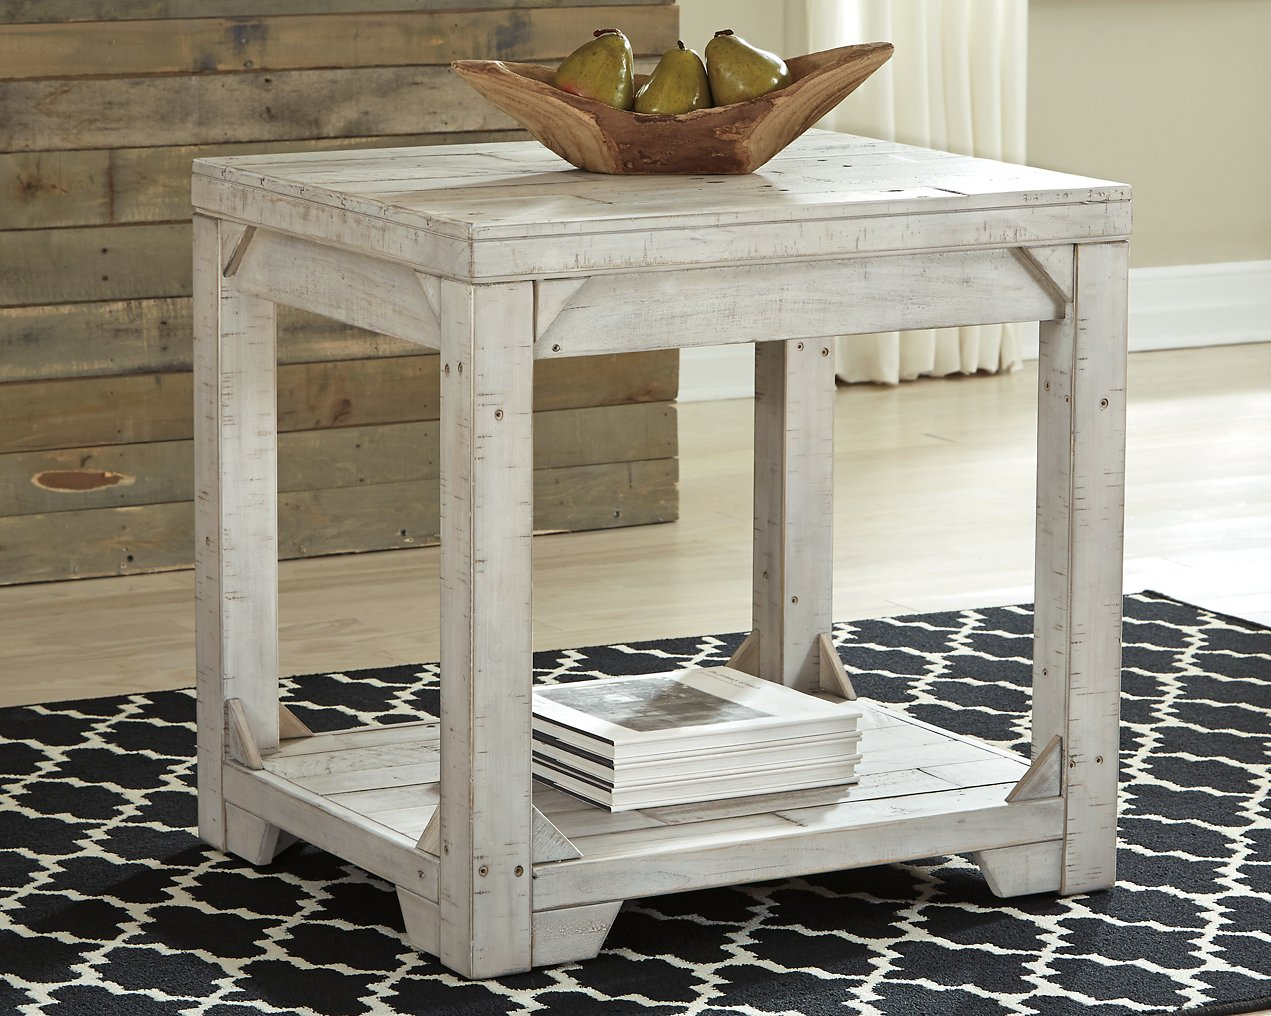 Fregine Signature Design by Ashley End Table image